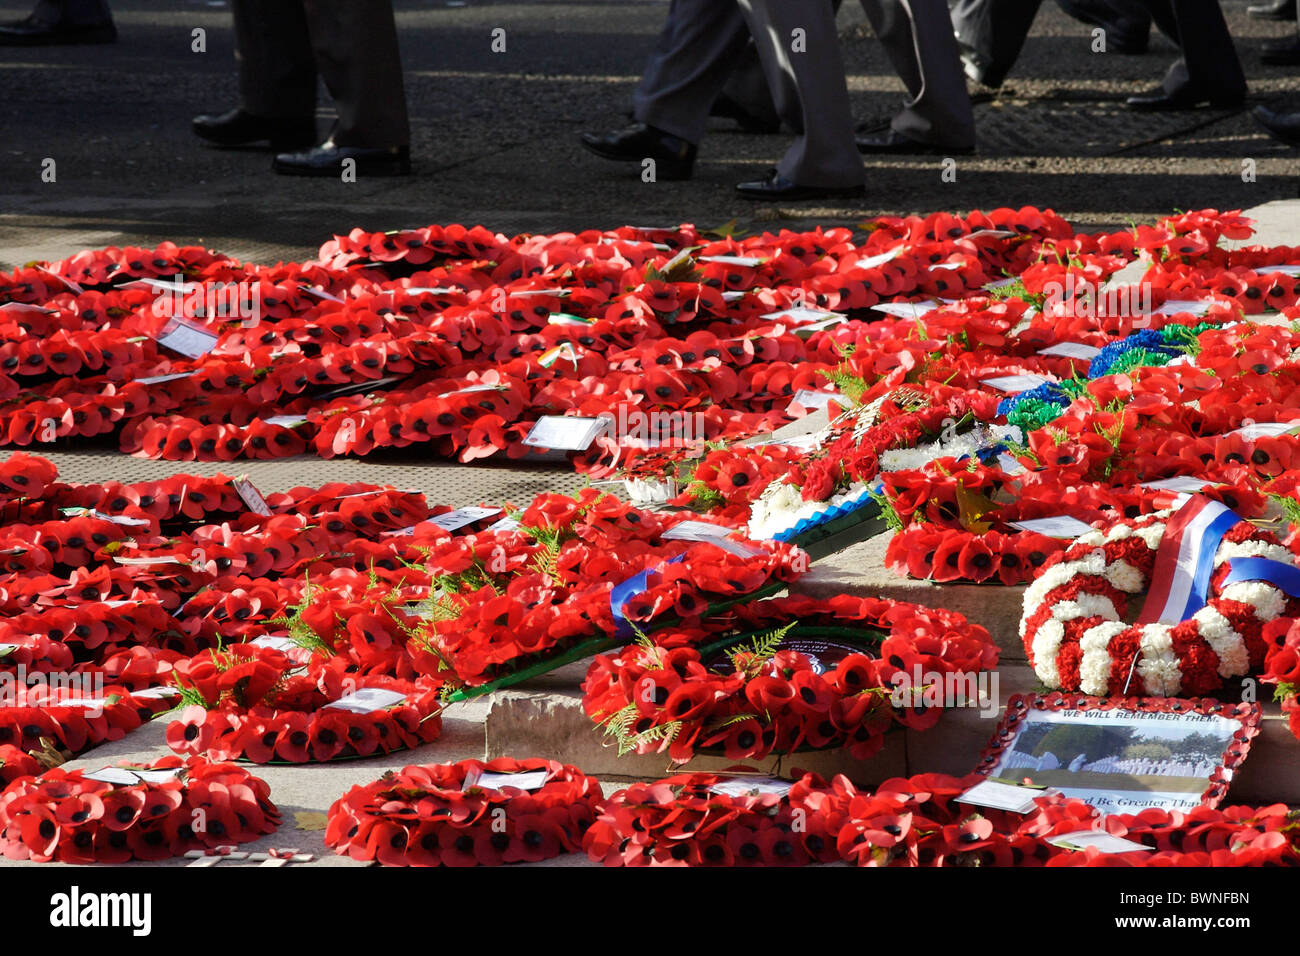 Veterans march past wreaths at the Cenotaph in Whitehall on Remembrance Sunday to commemorate the war dead - Stock Image